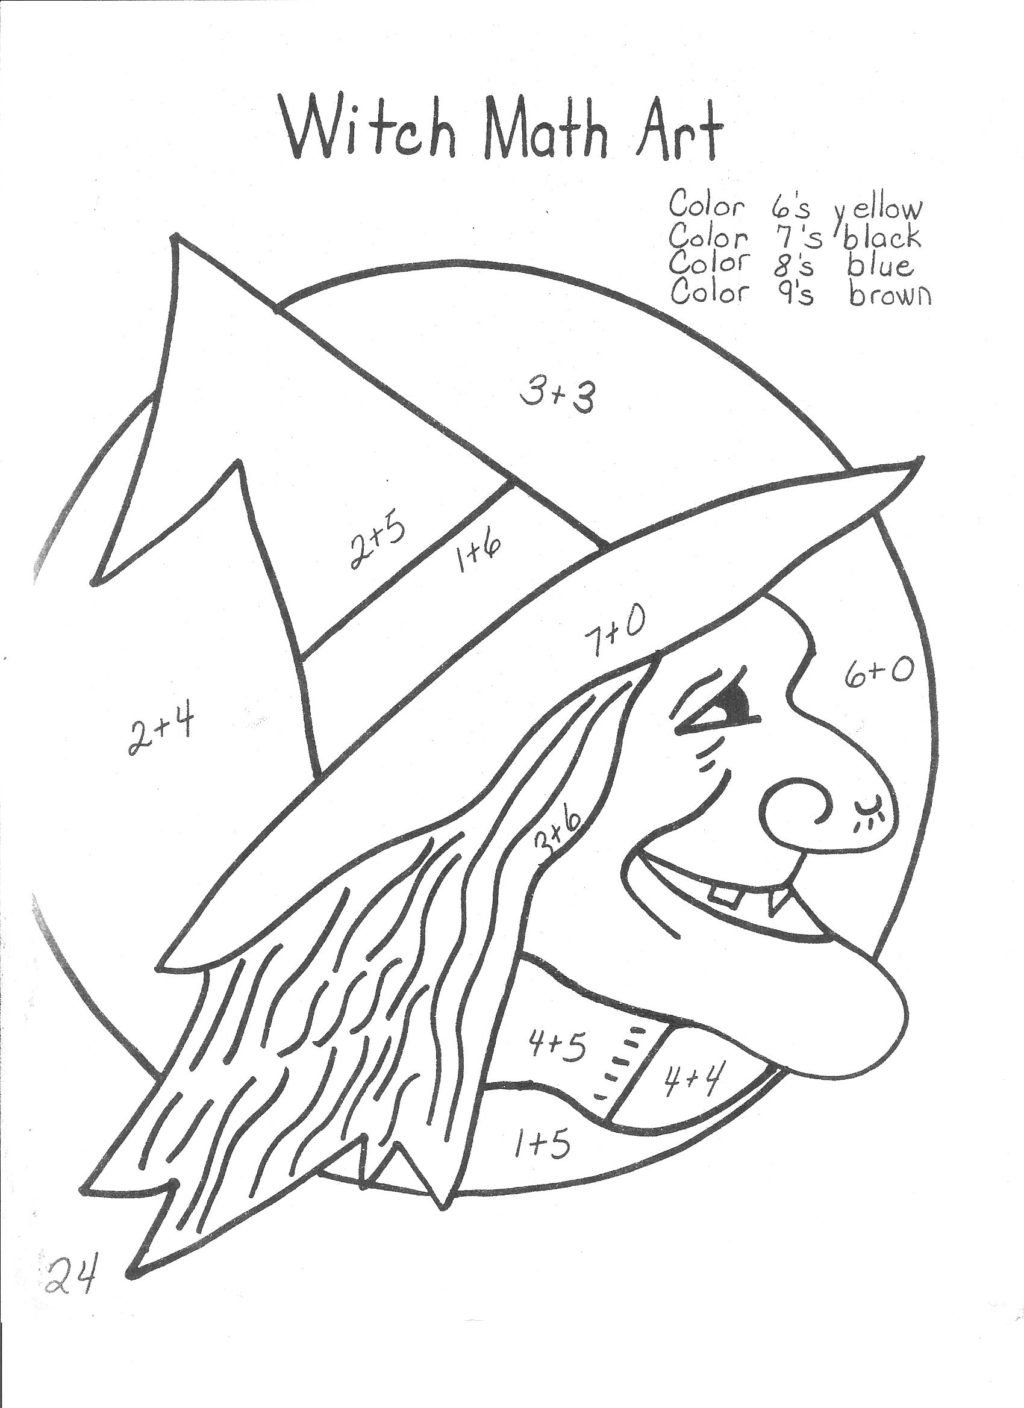 witches 13 days of halloween ideas math coloring worksheets 2